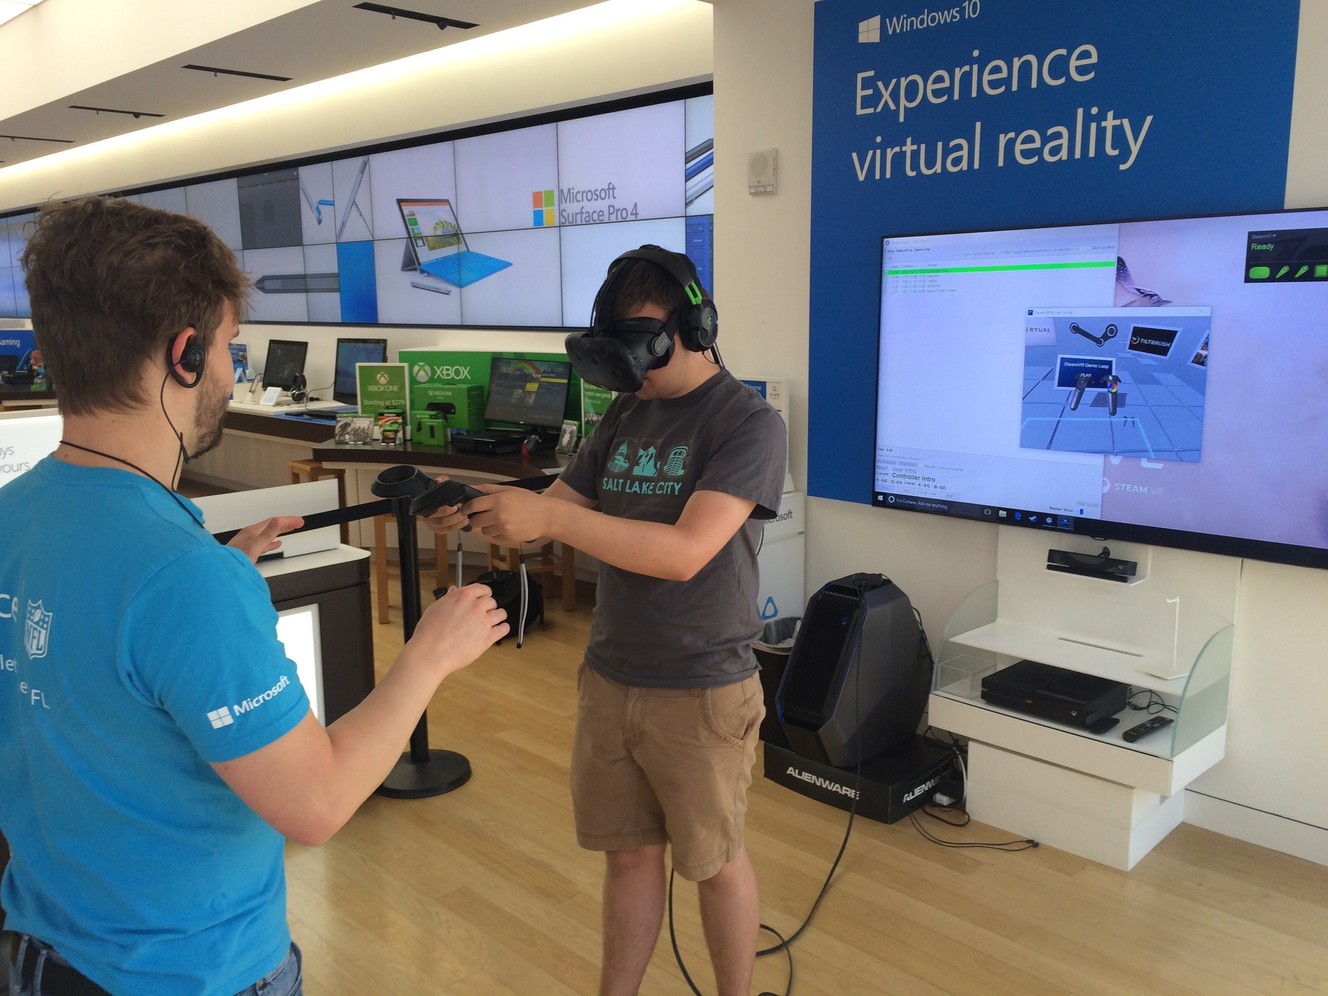 Go underwater, explore with new virtual reality games